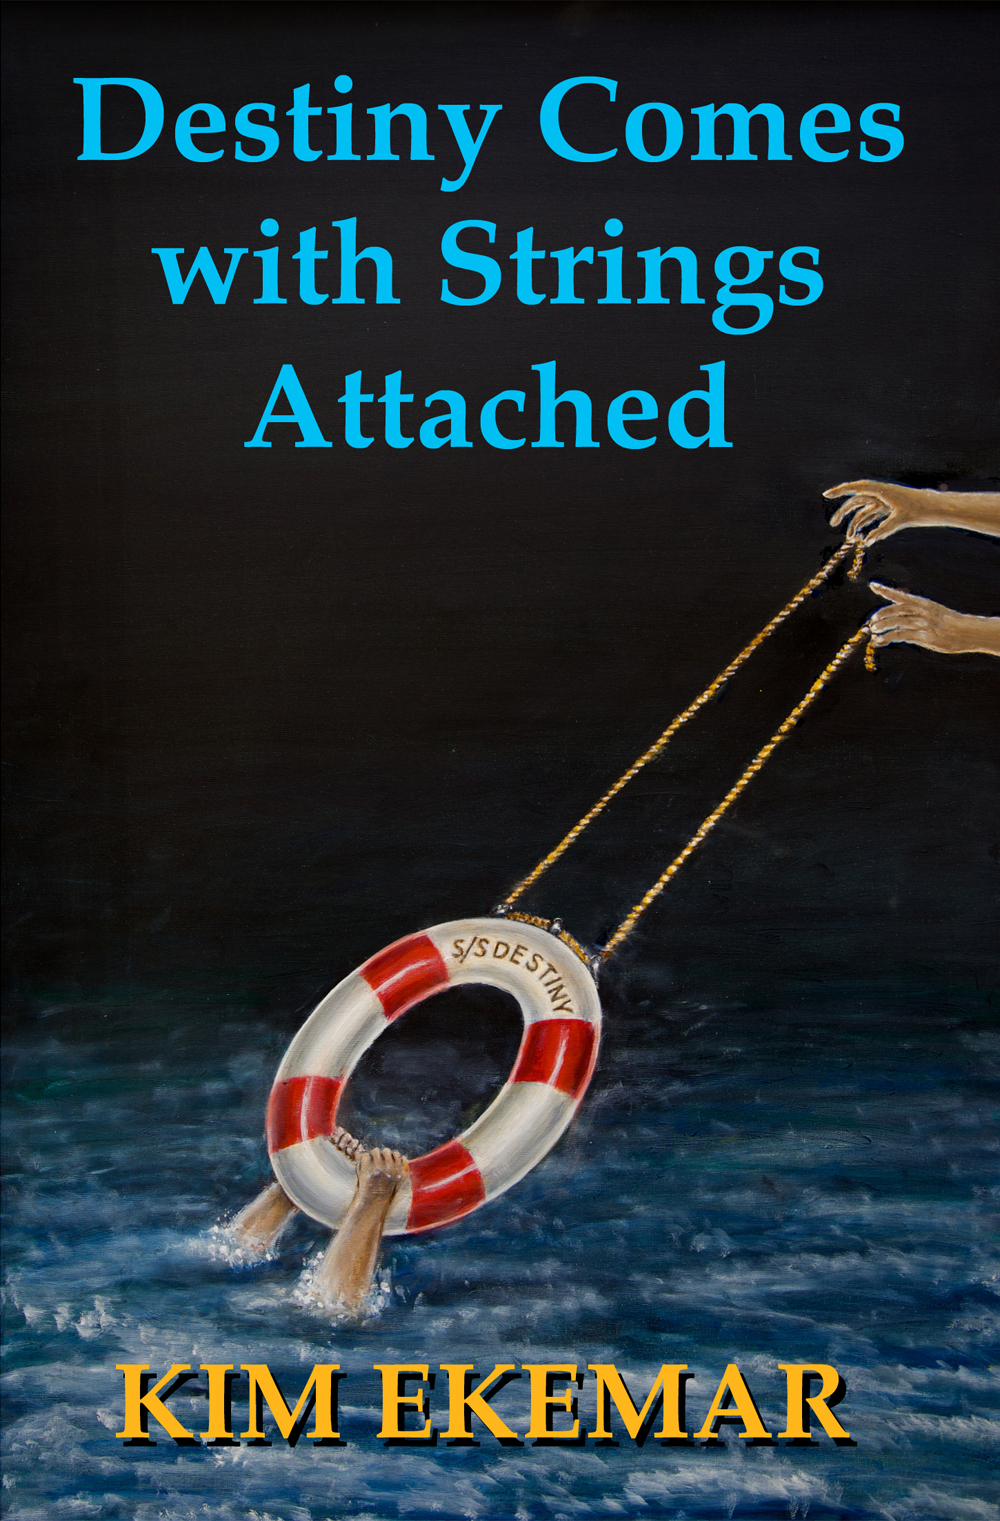 Destiny Comes with Strings Attached